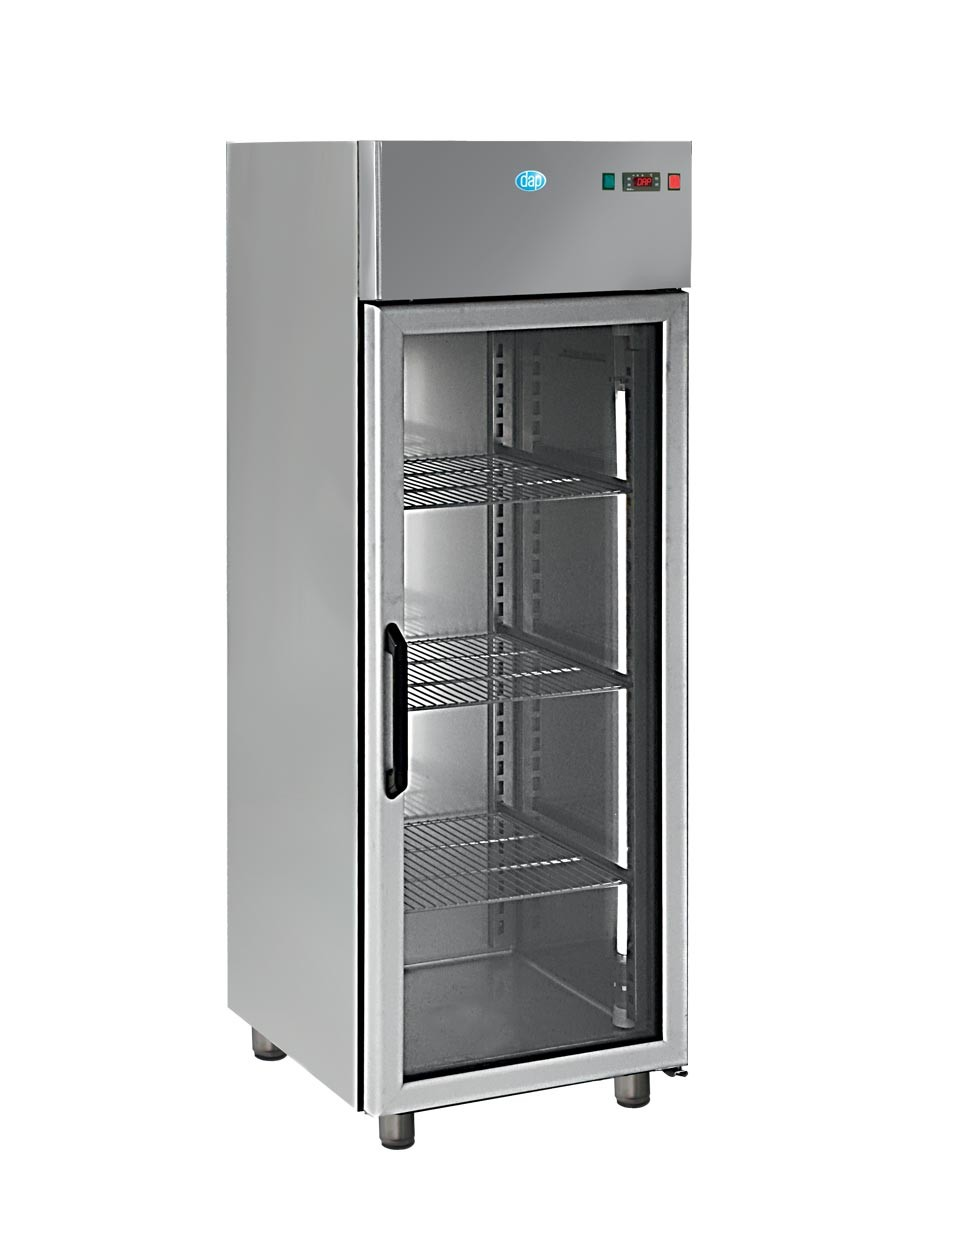 Gastronorme 700L - GN 2/1